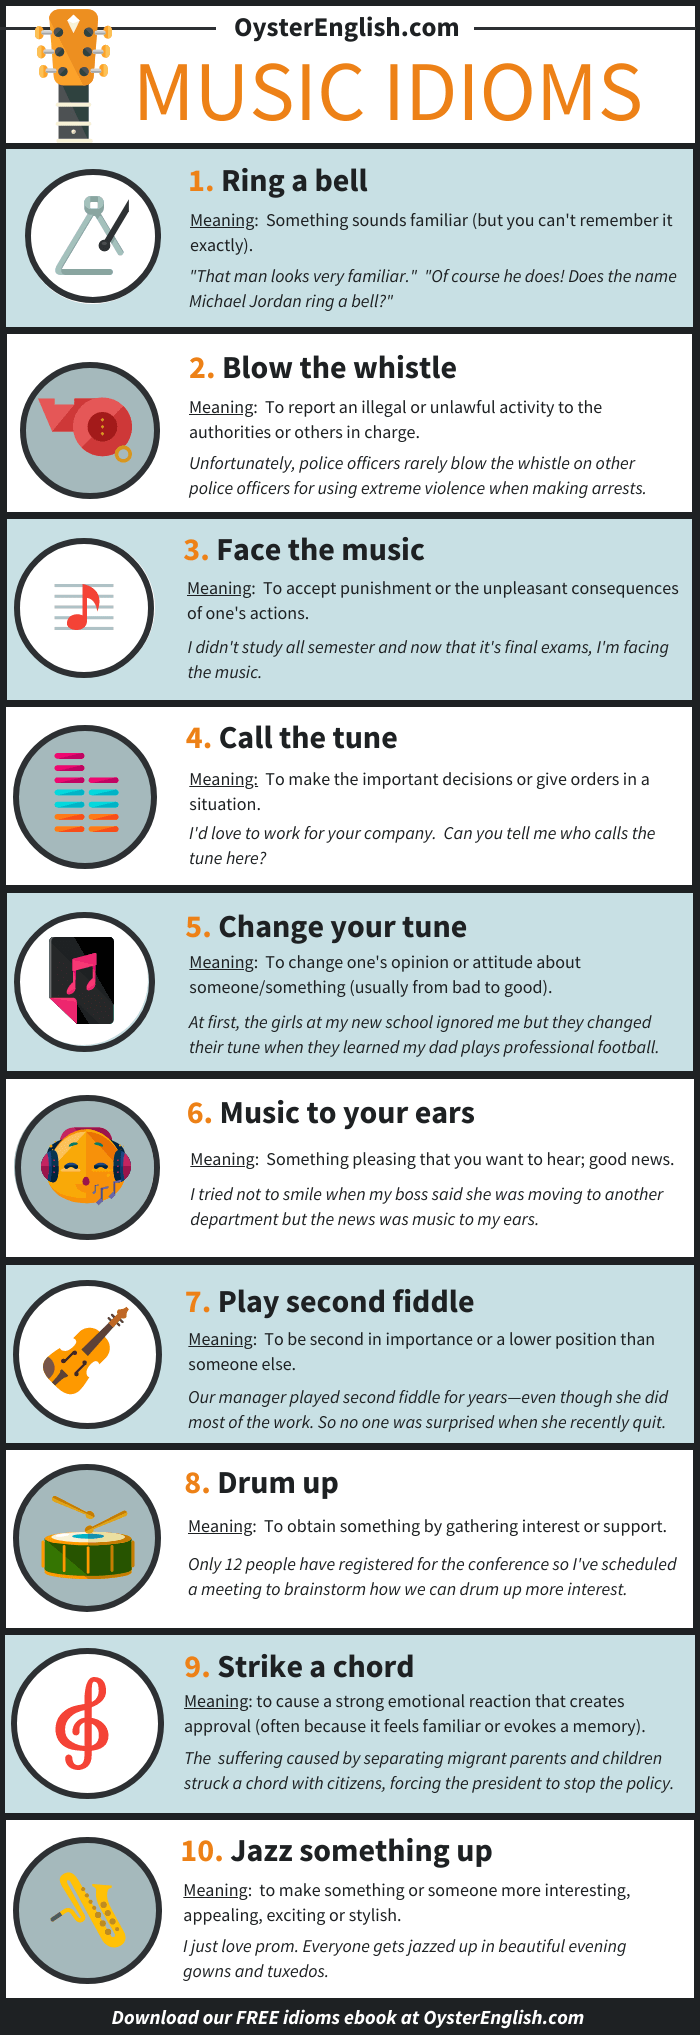 An infographic showing the 10 music idioms listed on this webpage with definitions and sentence examples